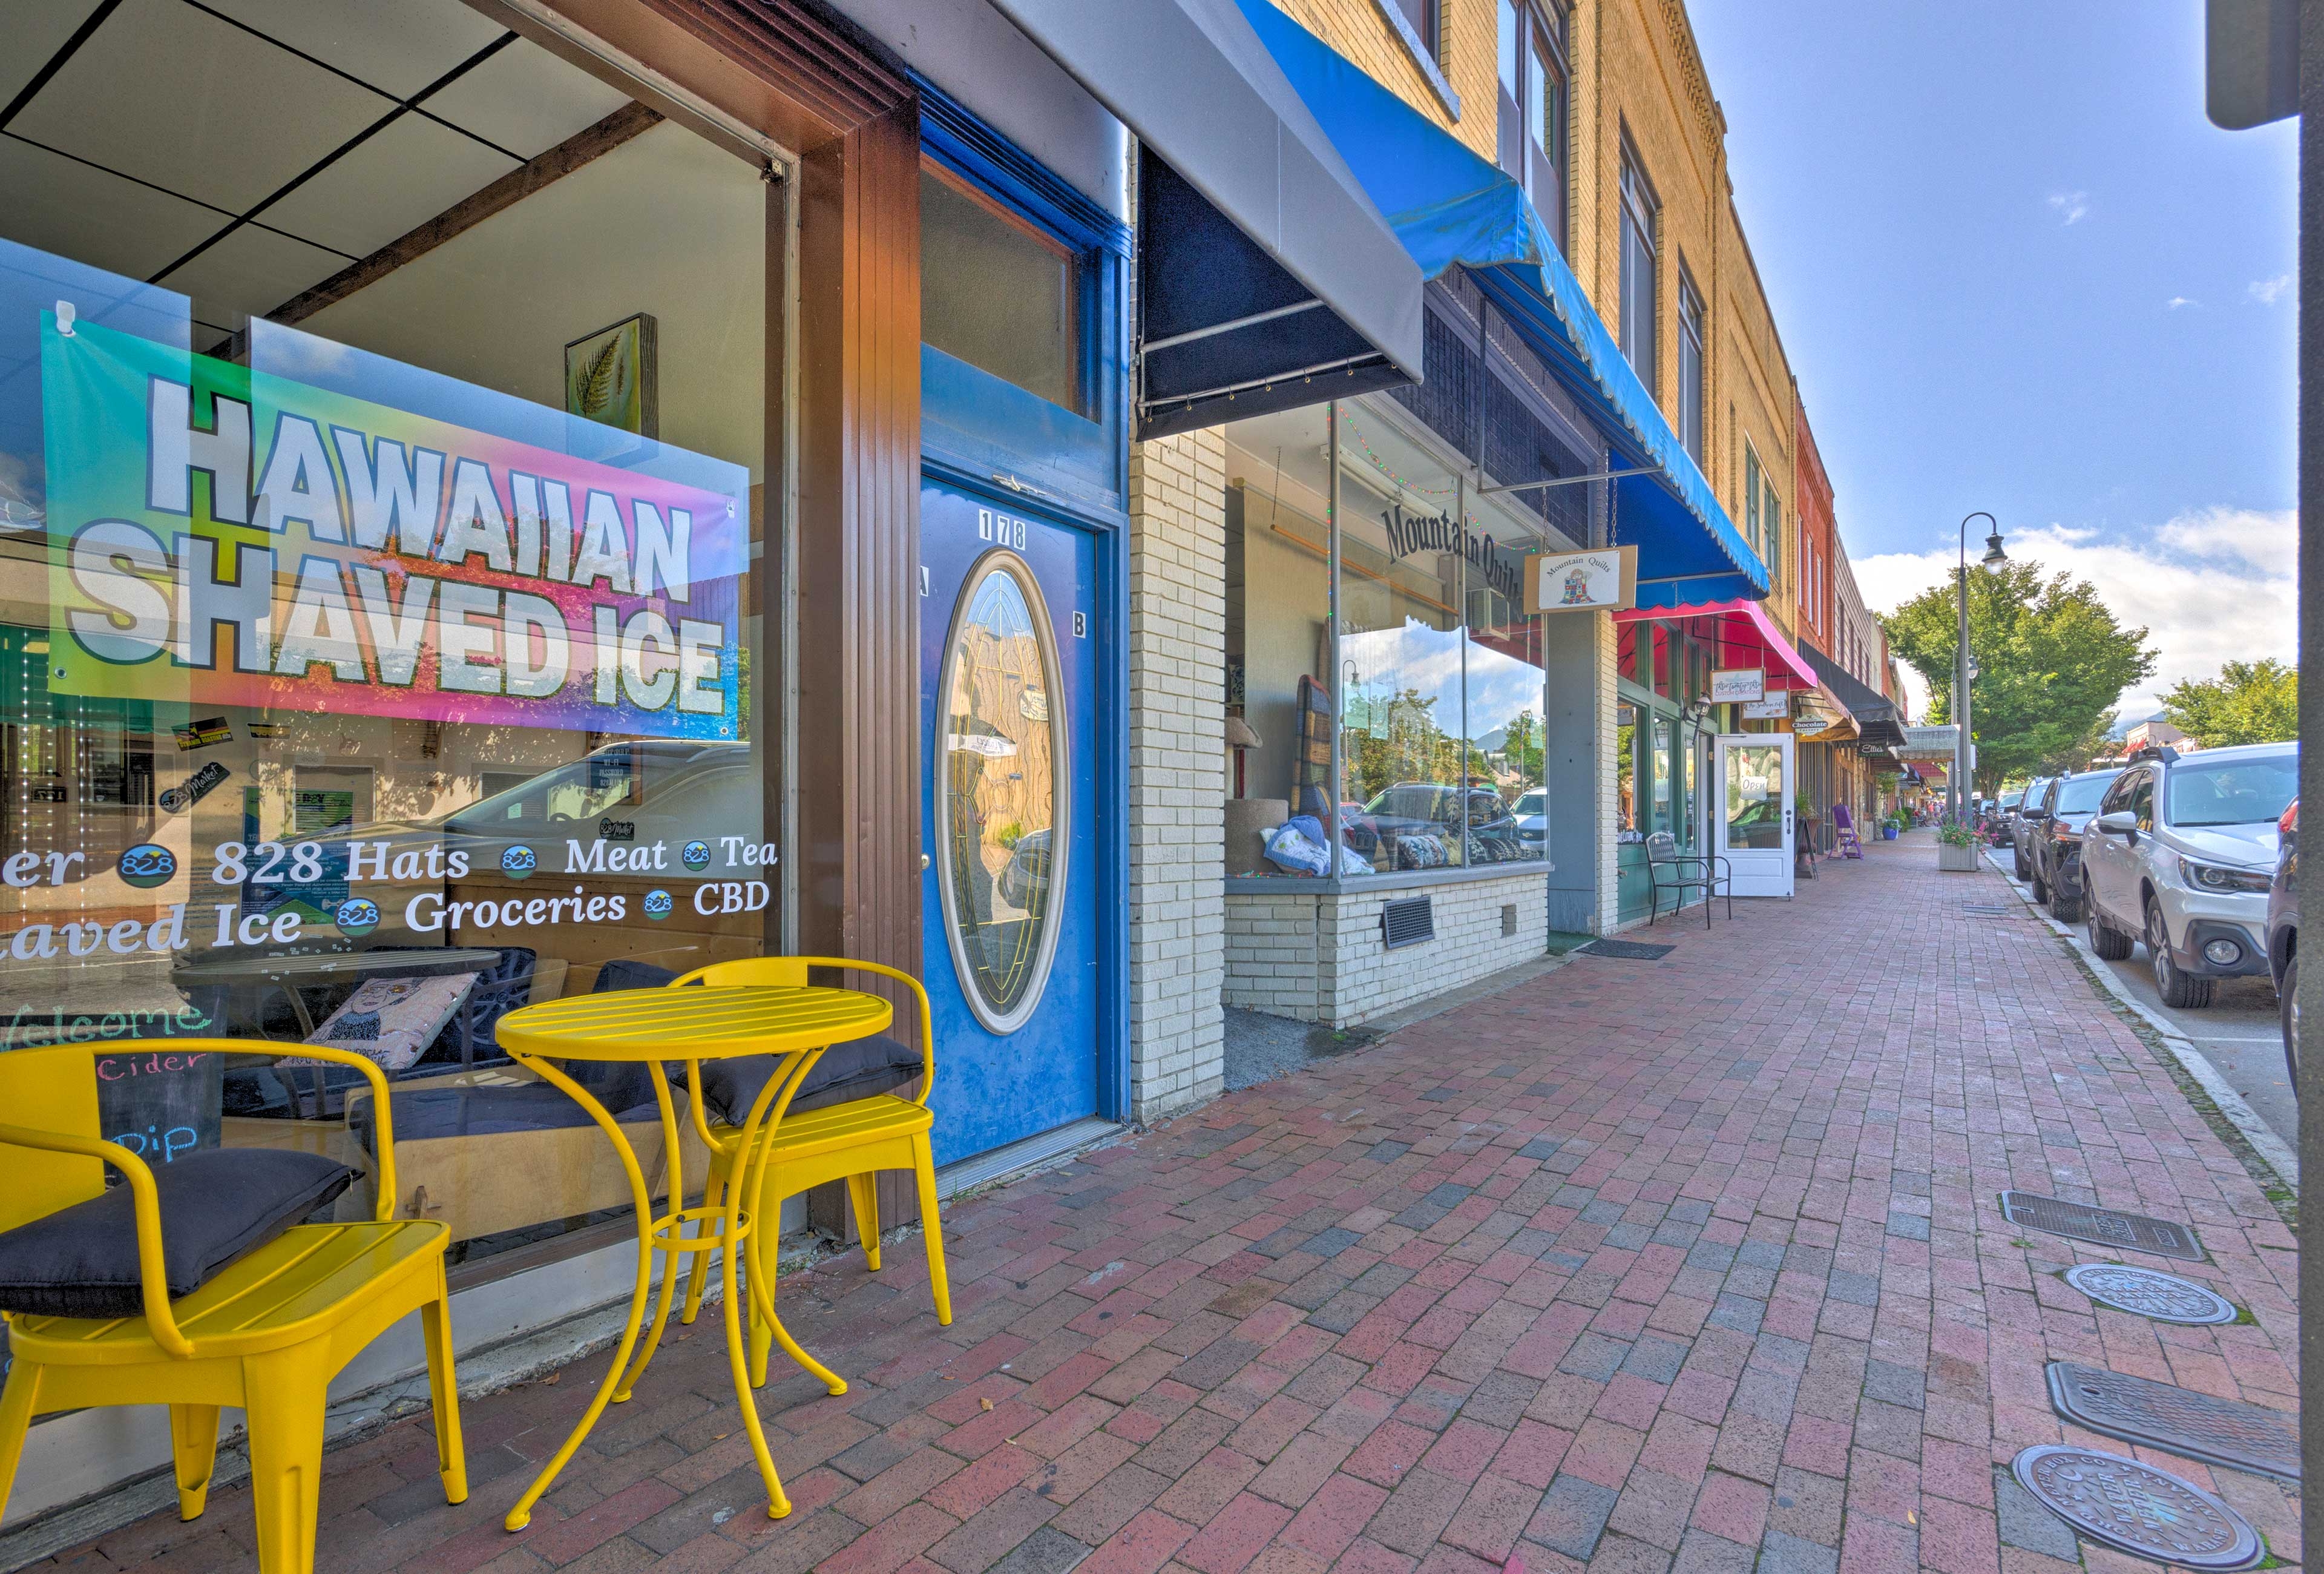 Stroll the brick-lined sidewalks while you shop, dine & explore the town.